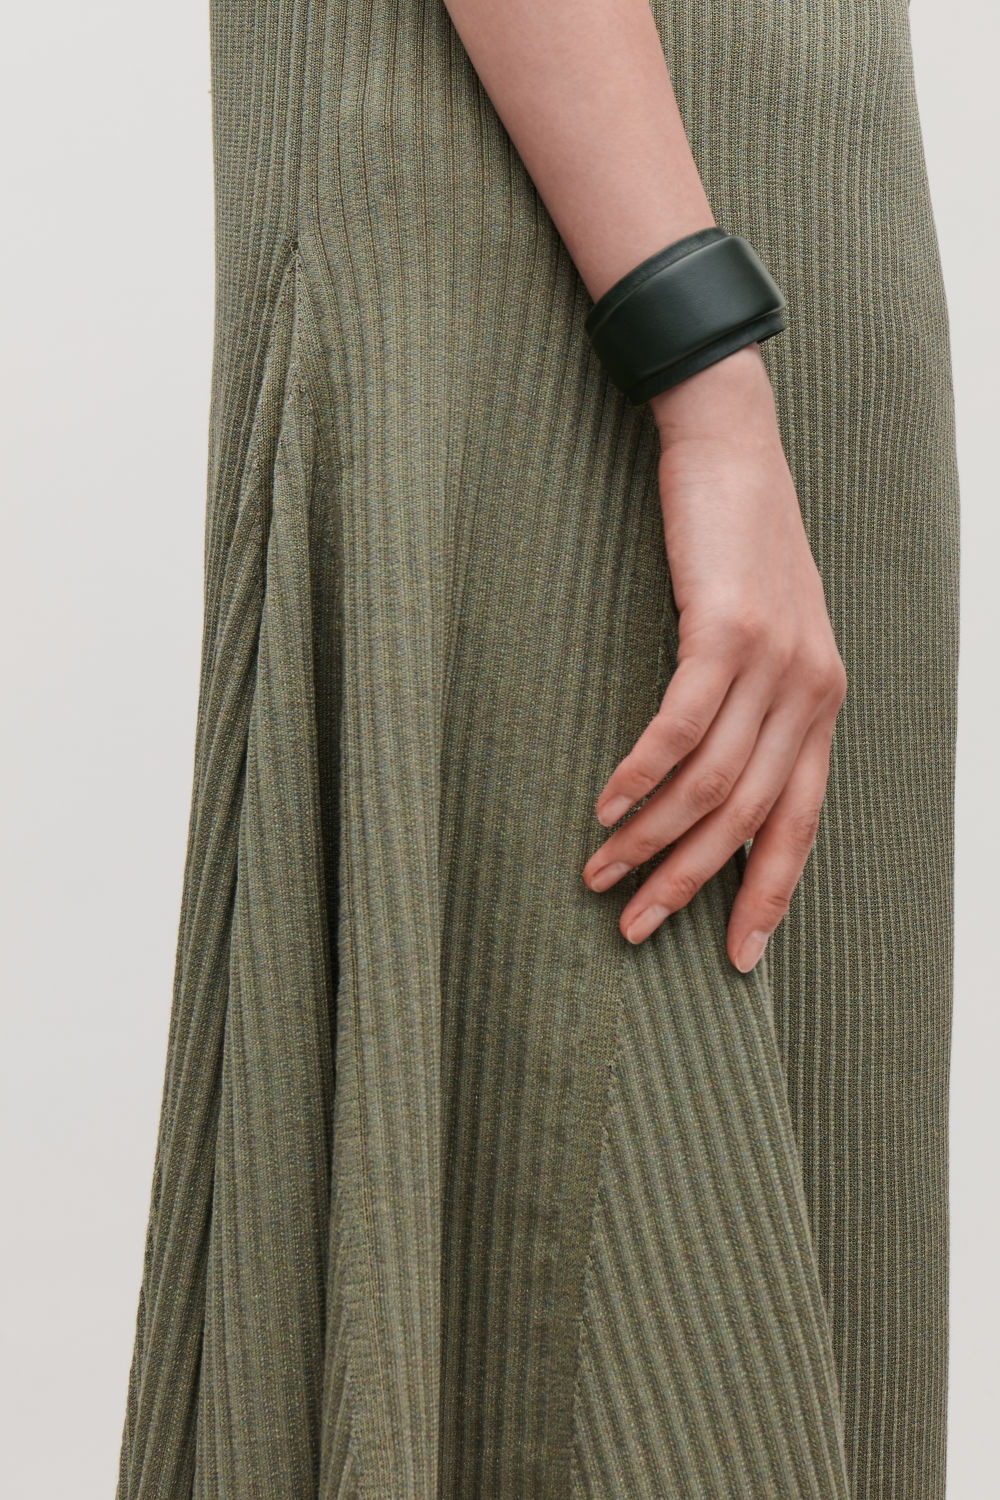 PADDED TWO-TONE LEATHER CUFF